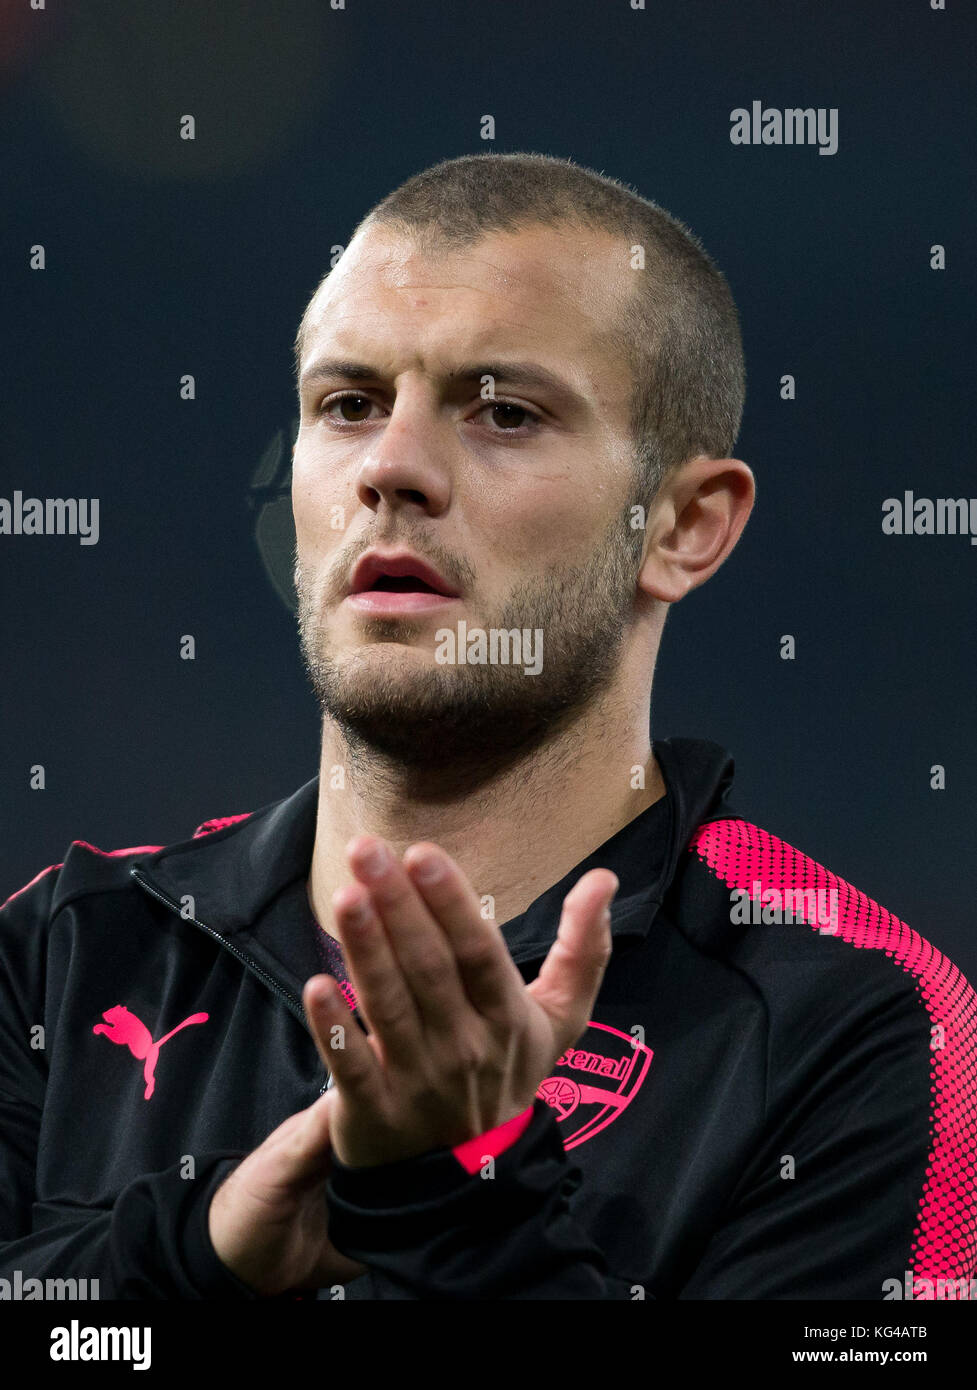 London, UK. 02nd Nov, 2017. Jack Wilshere of Arsenal ahead of the UEFA Europa League group stage match between Arsenal - Stock Image